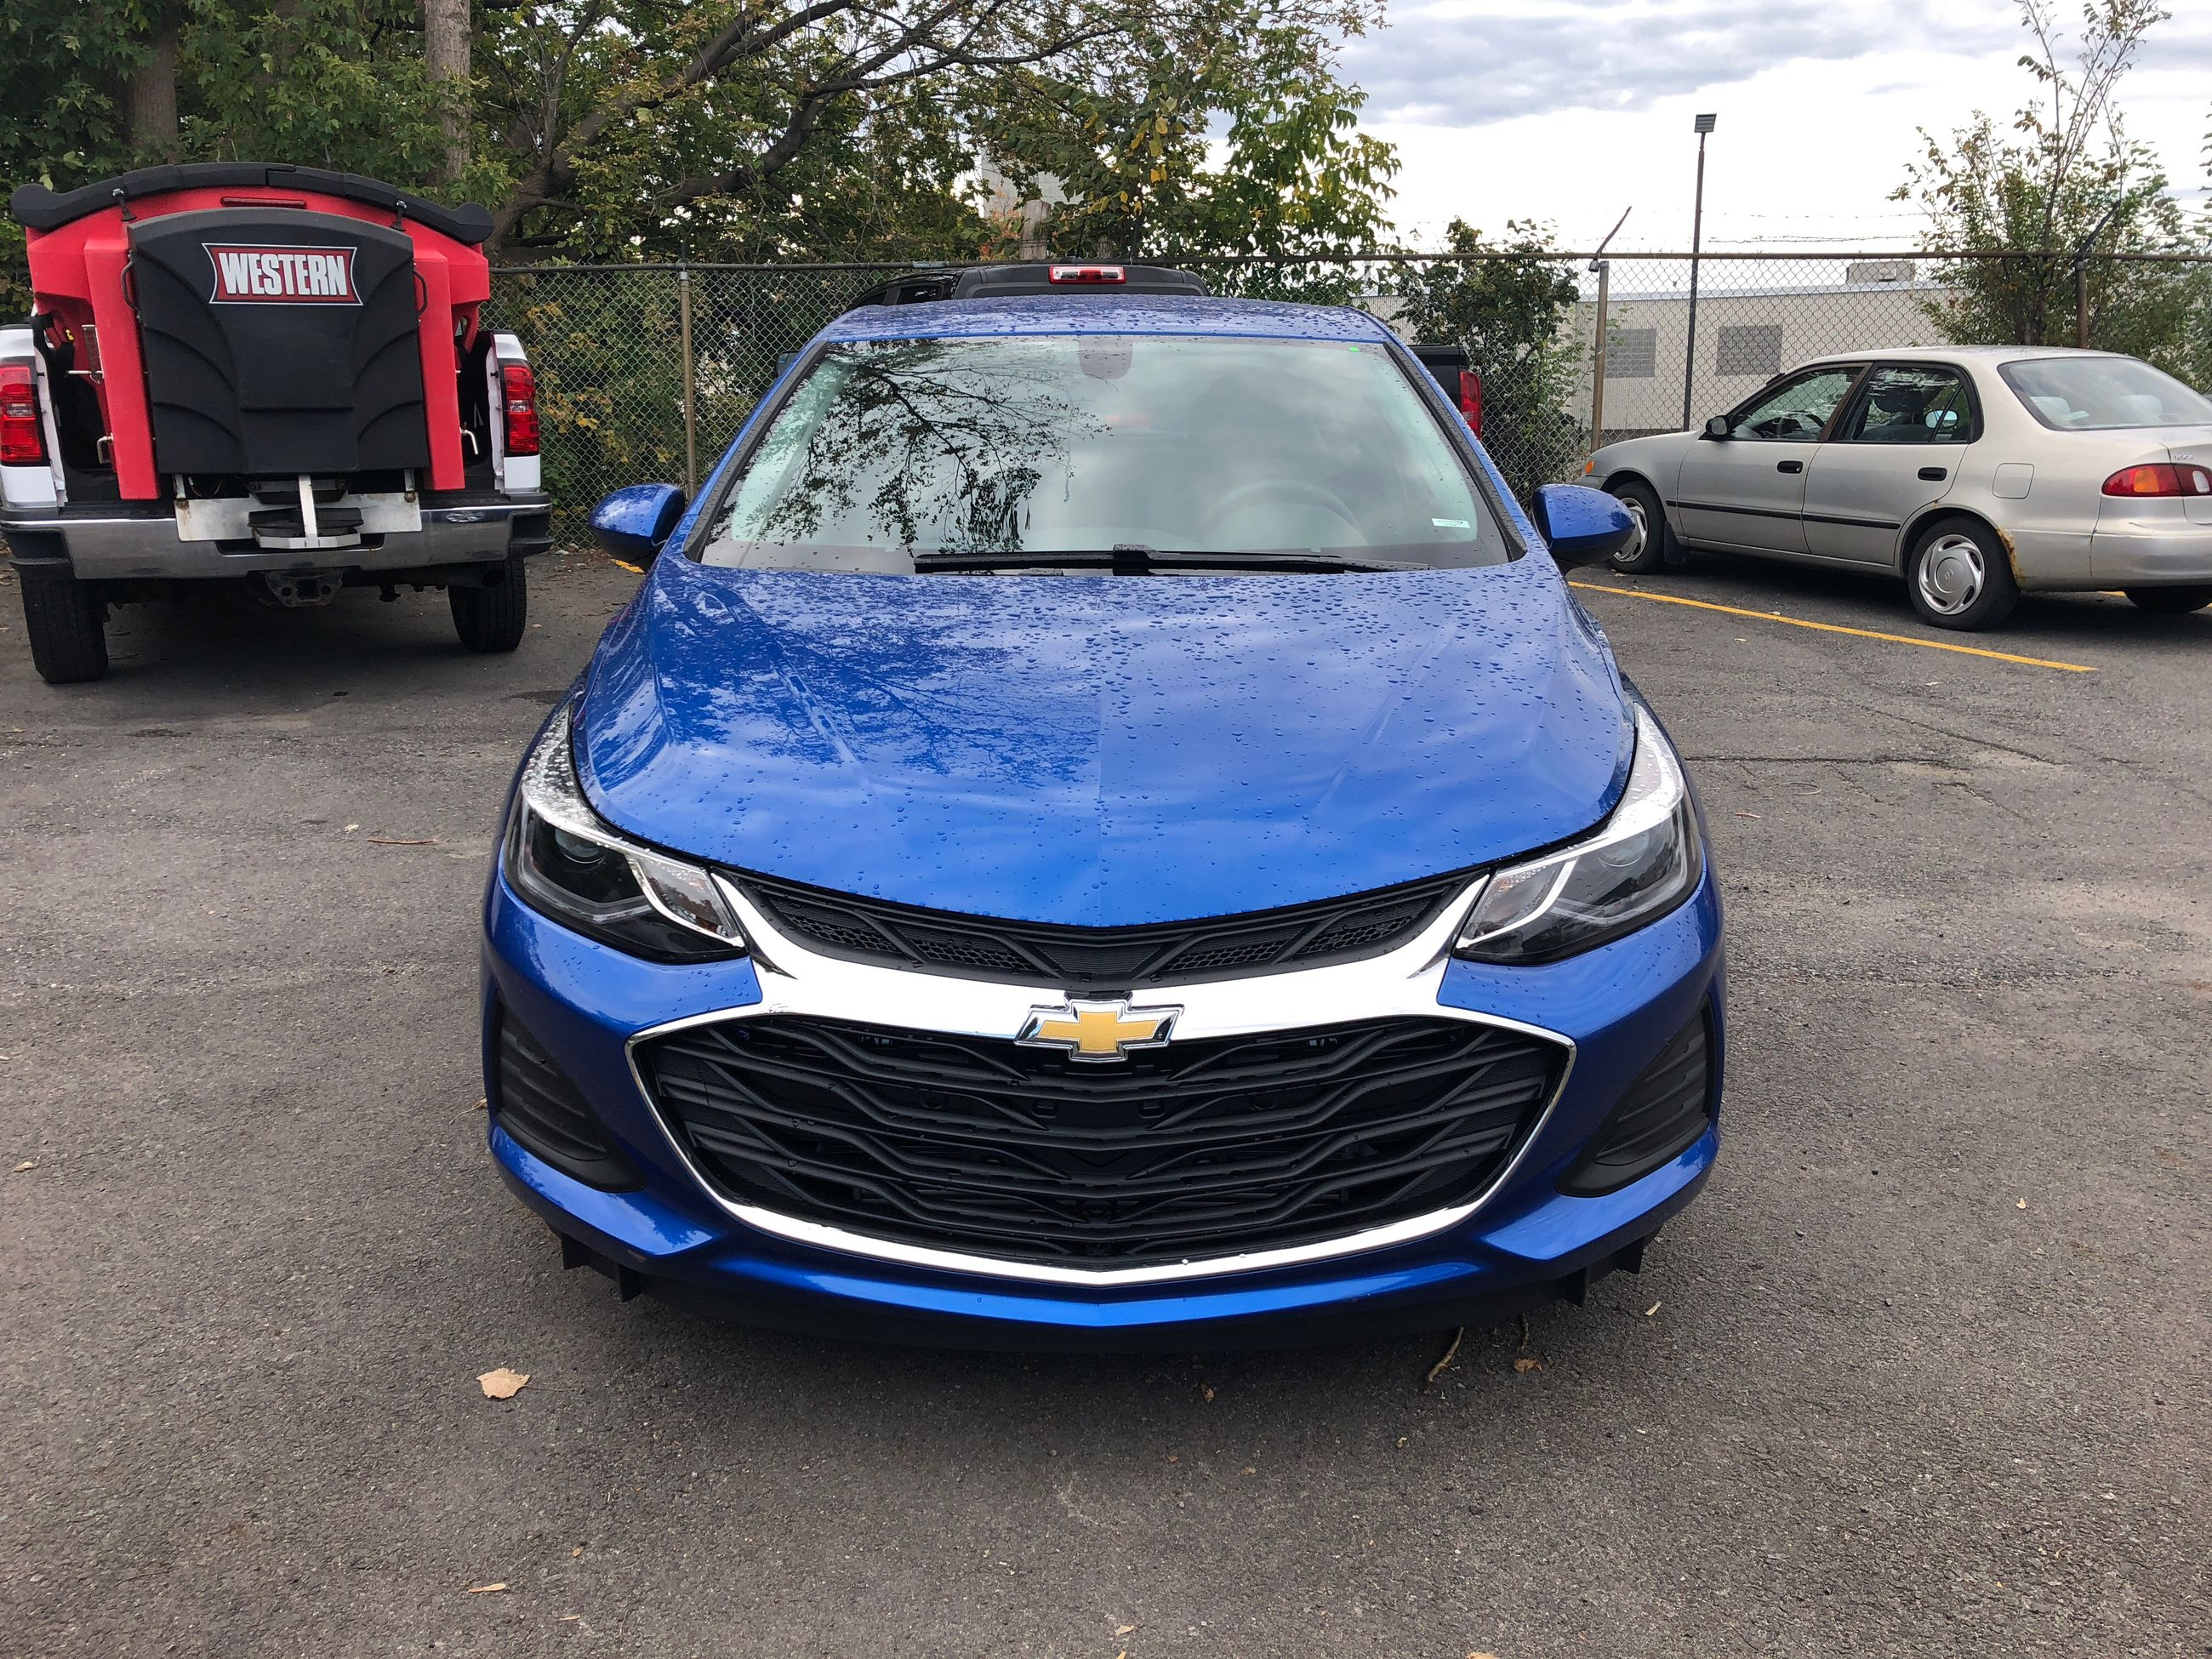 New 2019 Chevrolet Cruze LT for Sale - $22819.0 | Surgenor ...